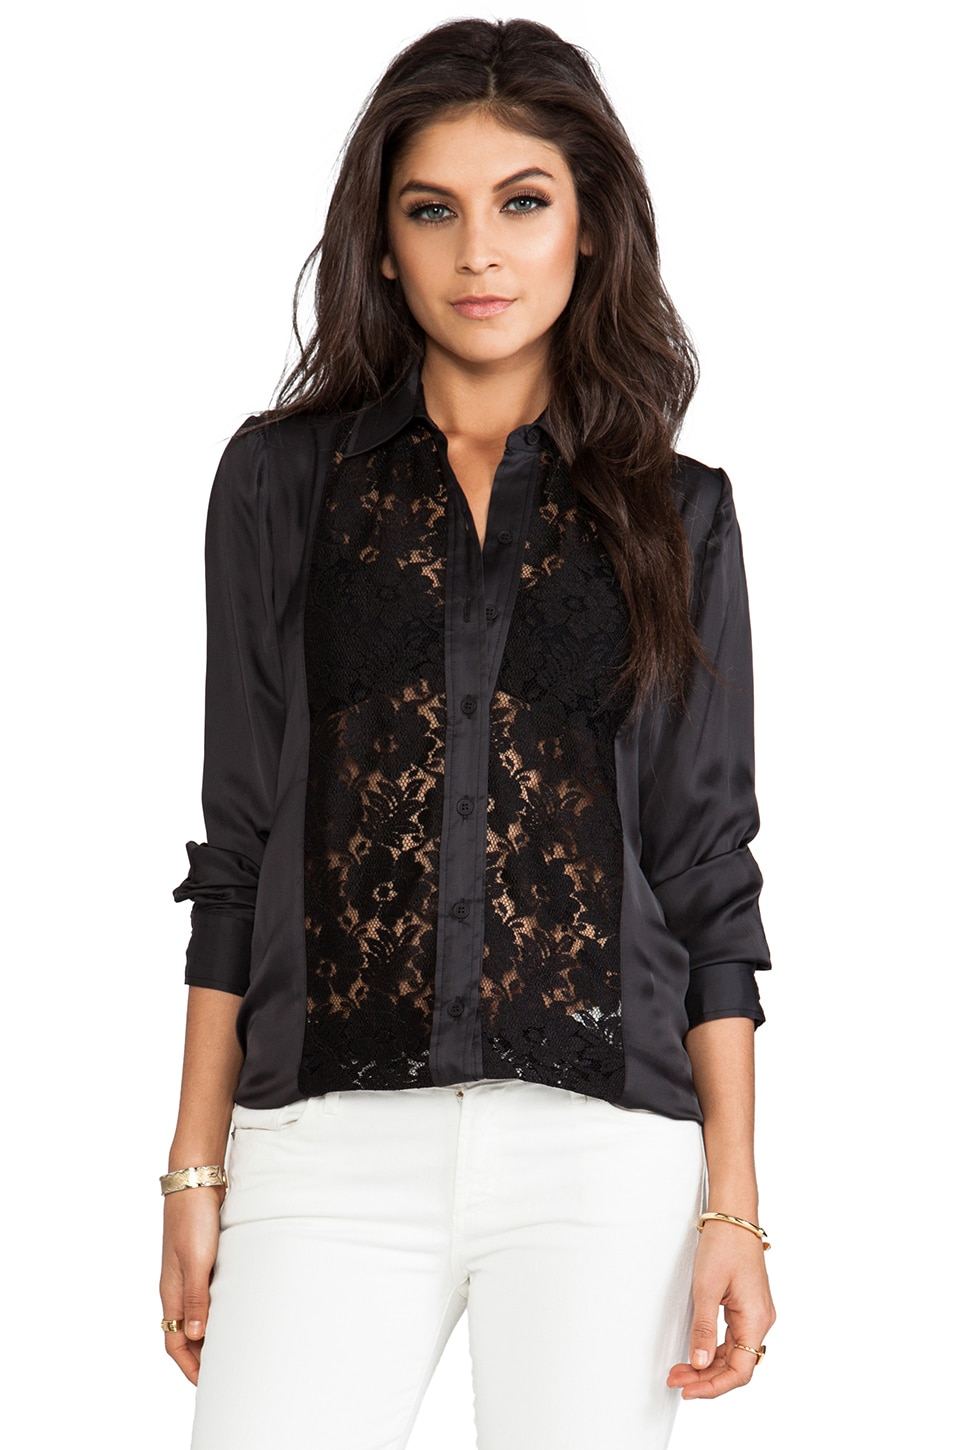 Smythe Lace Panel Shirt in Black